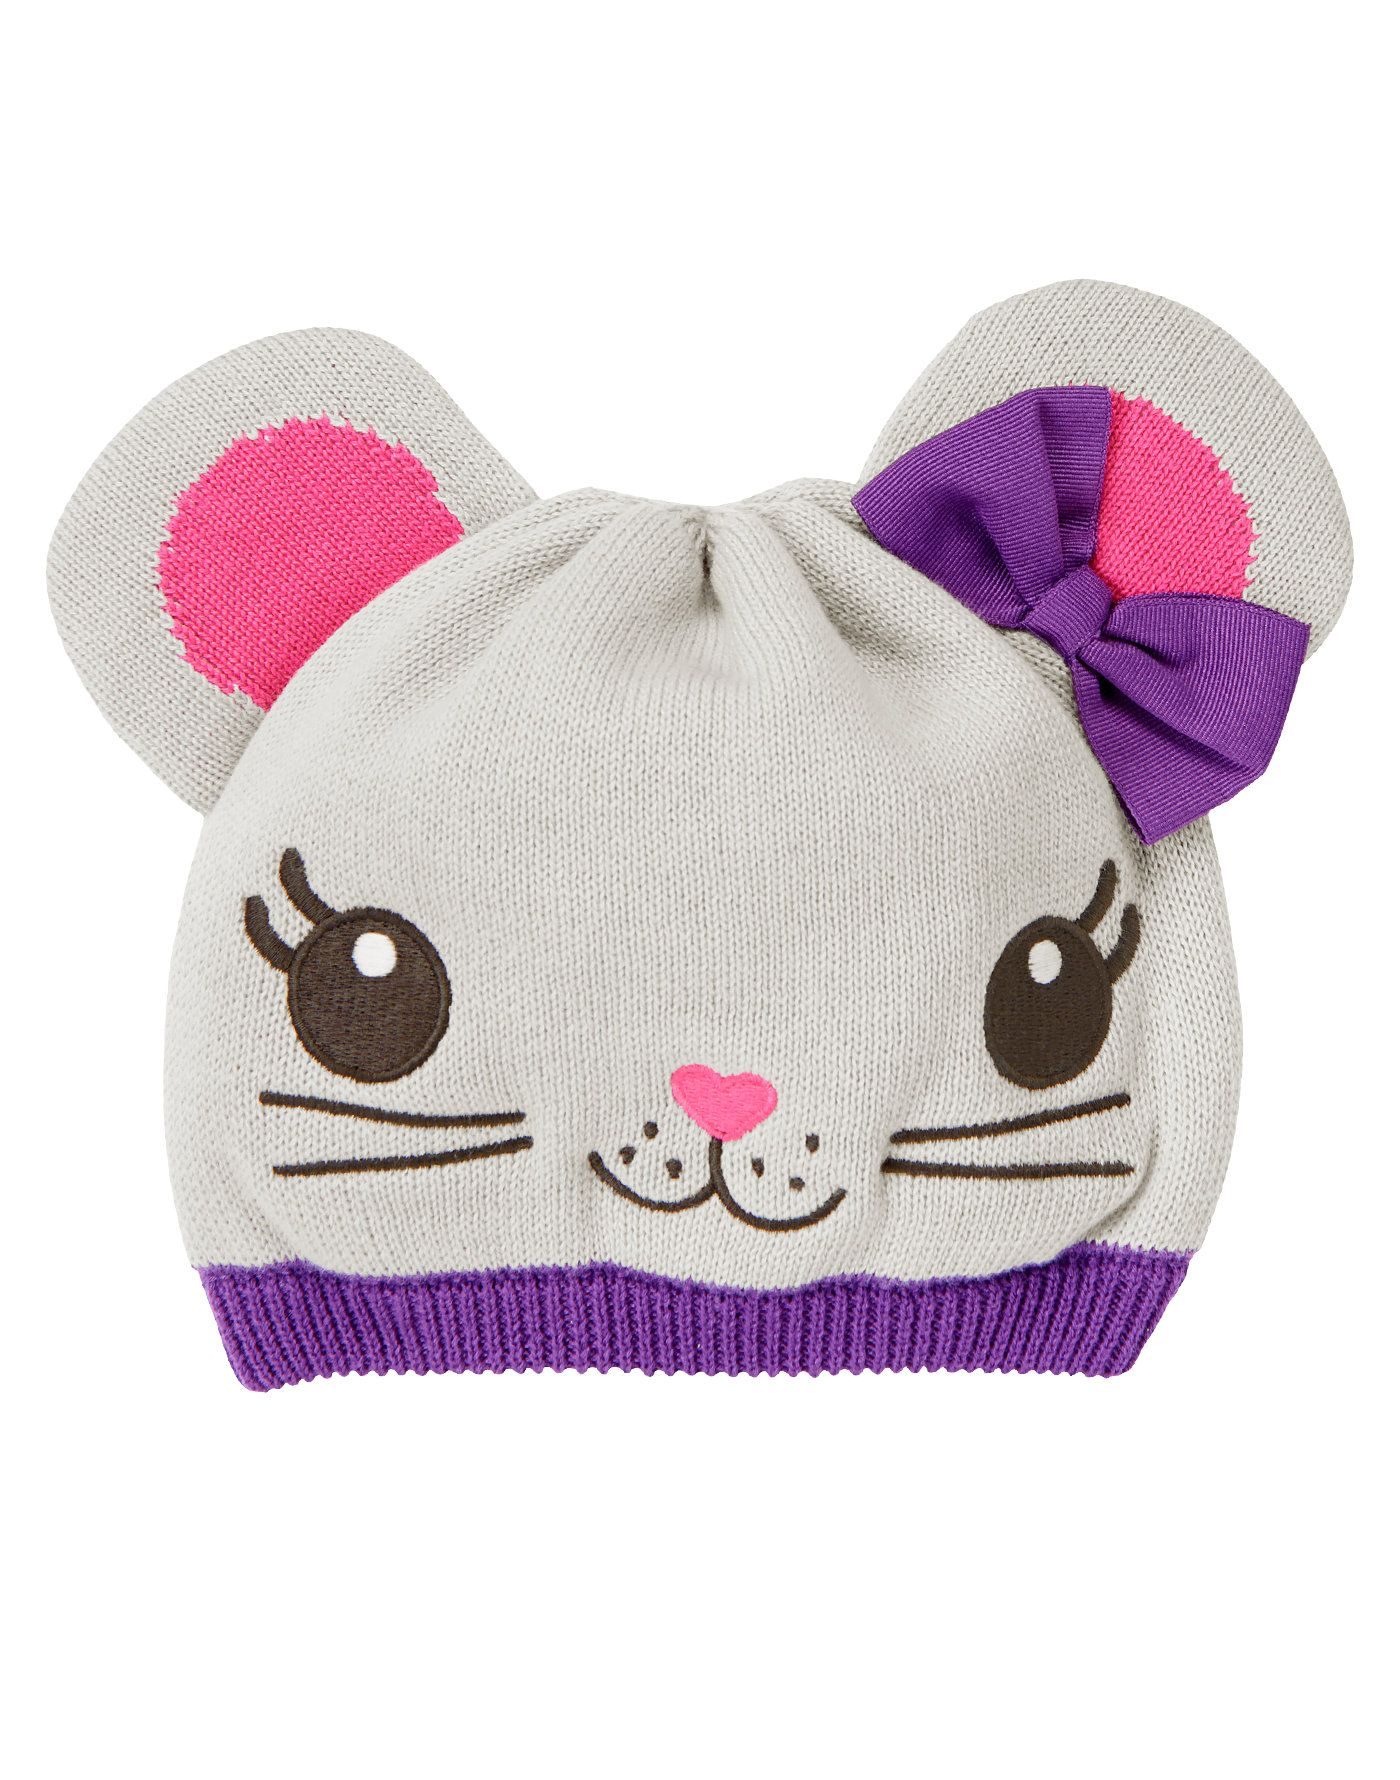 Bow Mouse Sweater HatCute little mouse for chilly days. Cozy sweater ... df054b04e44d